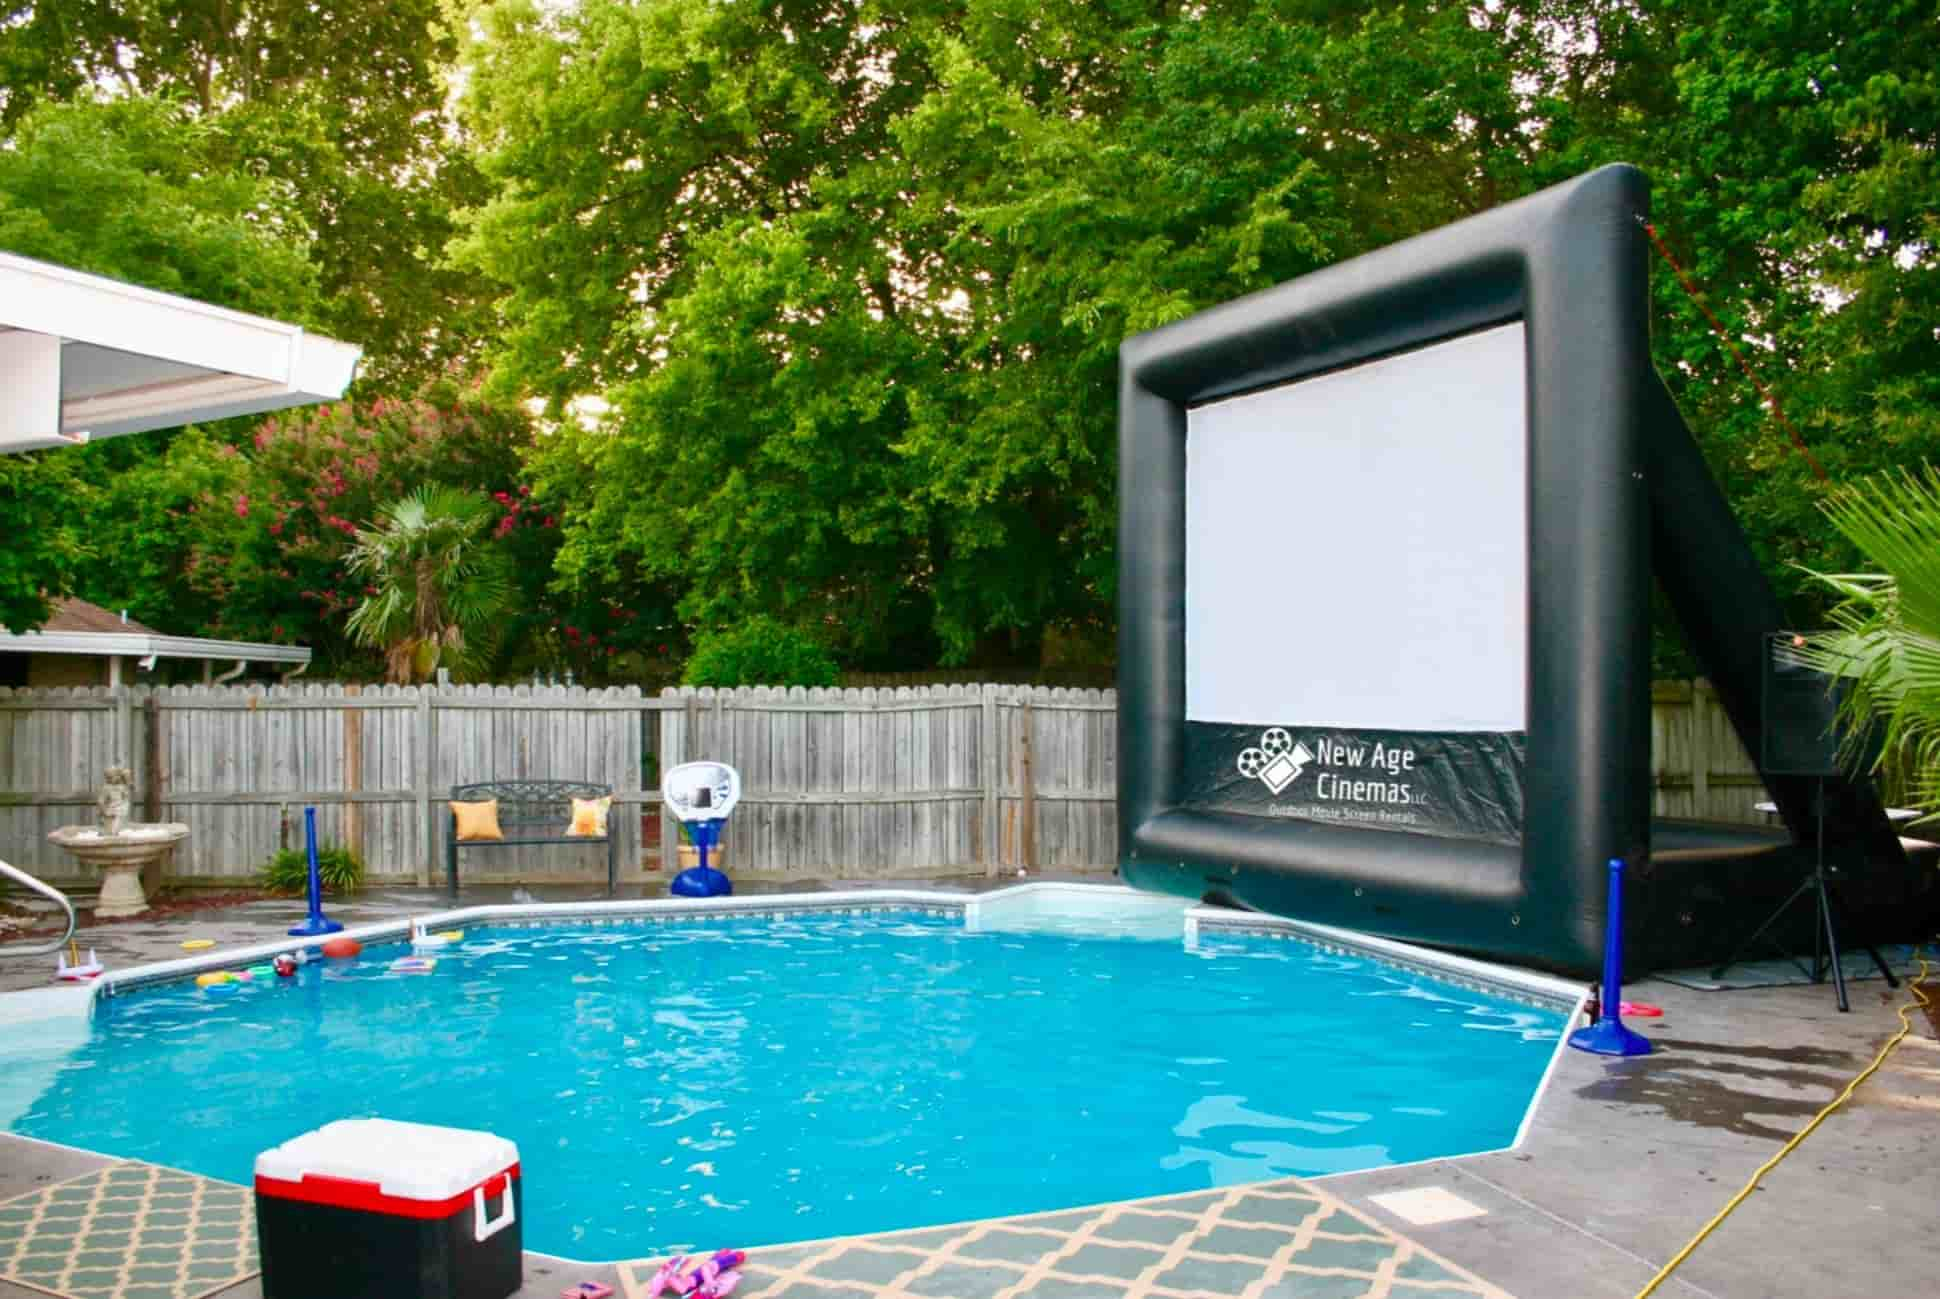 Movie by the pool